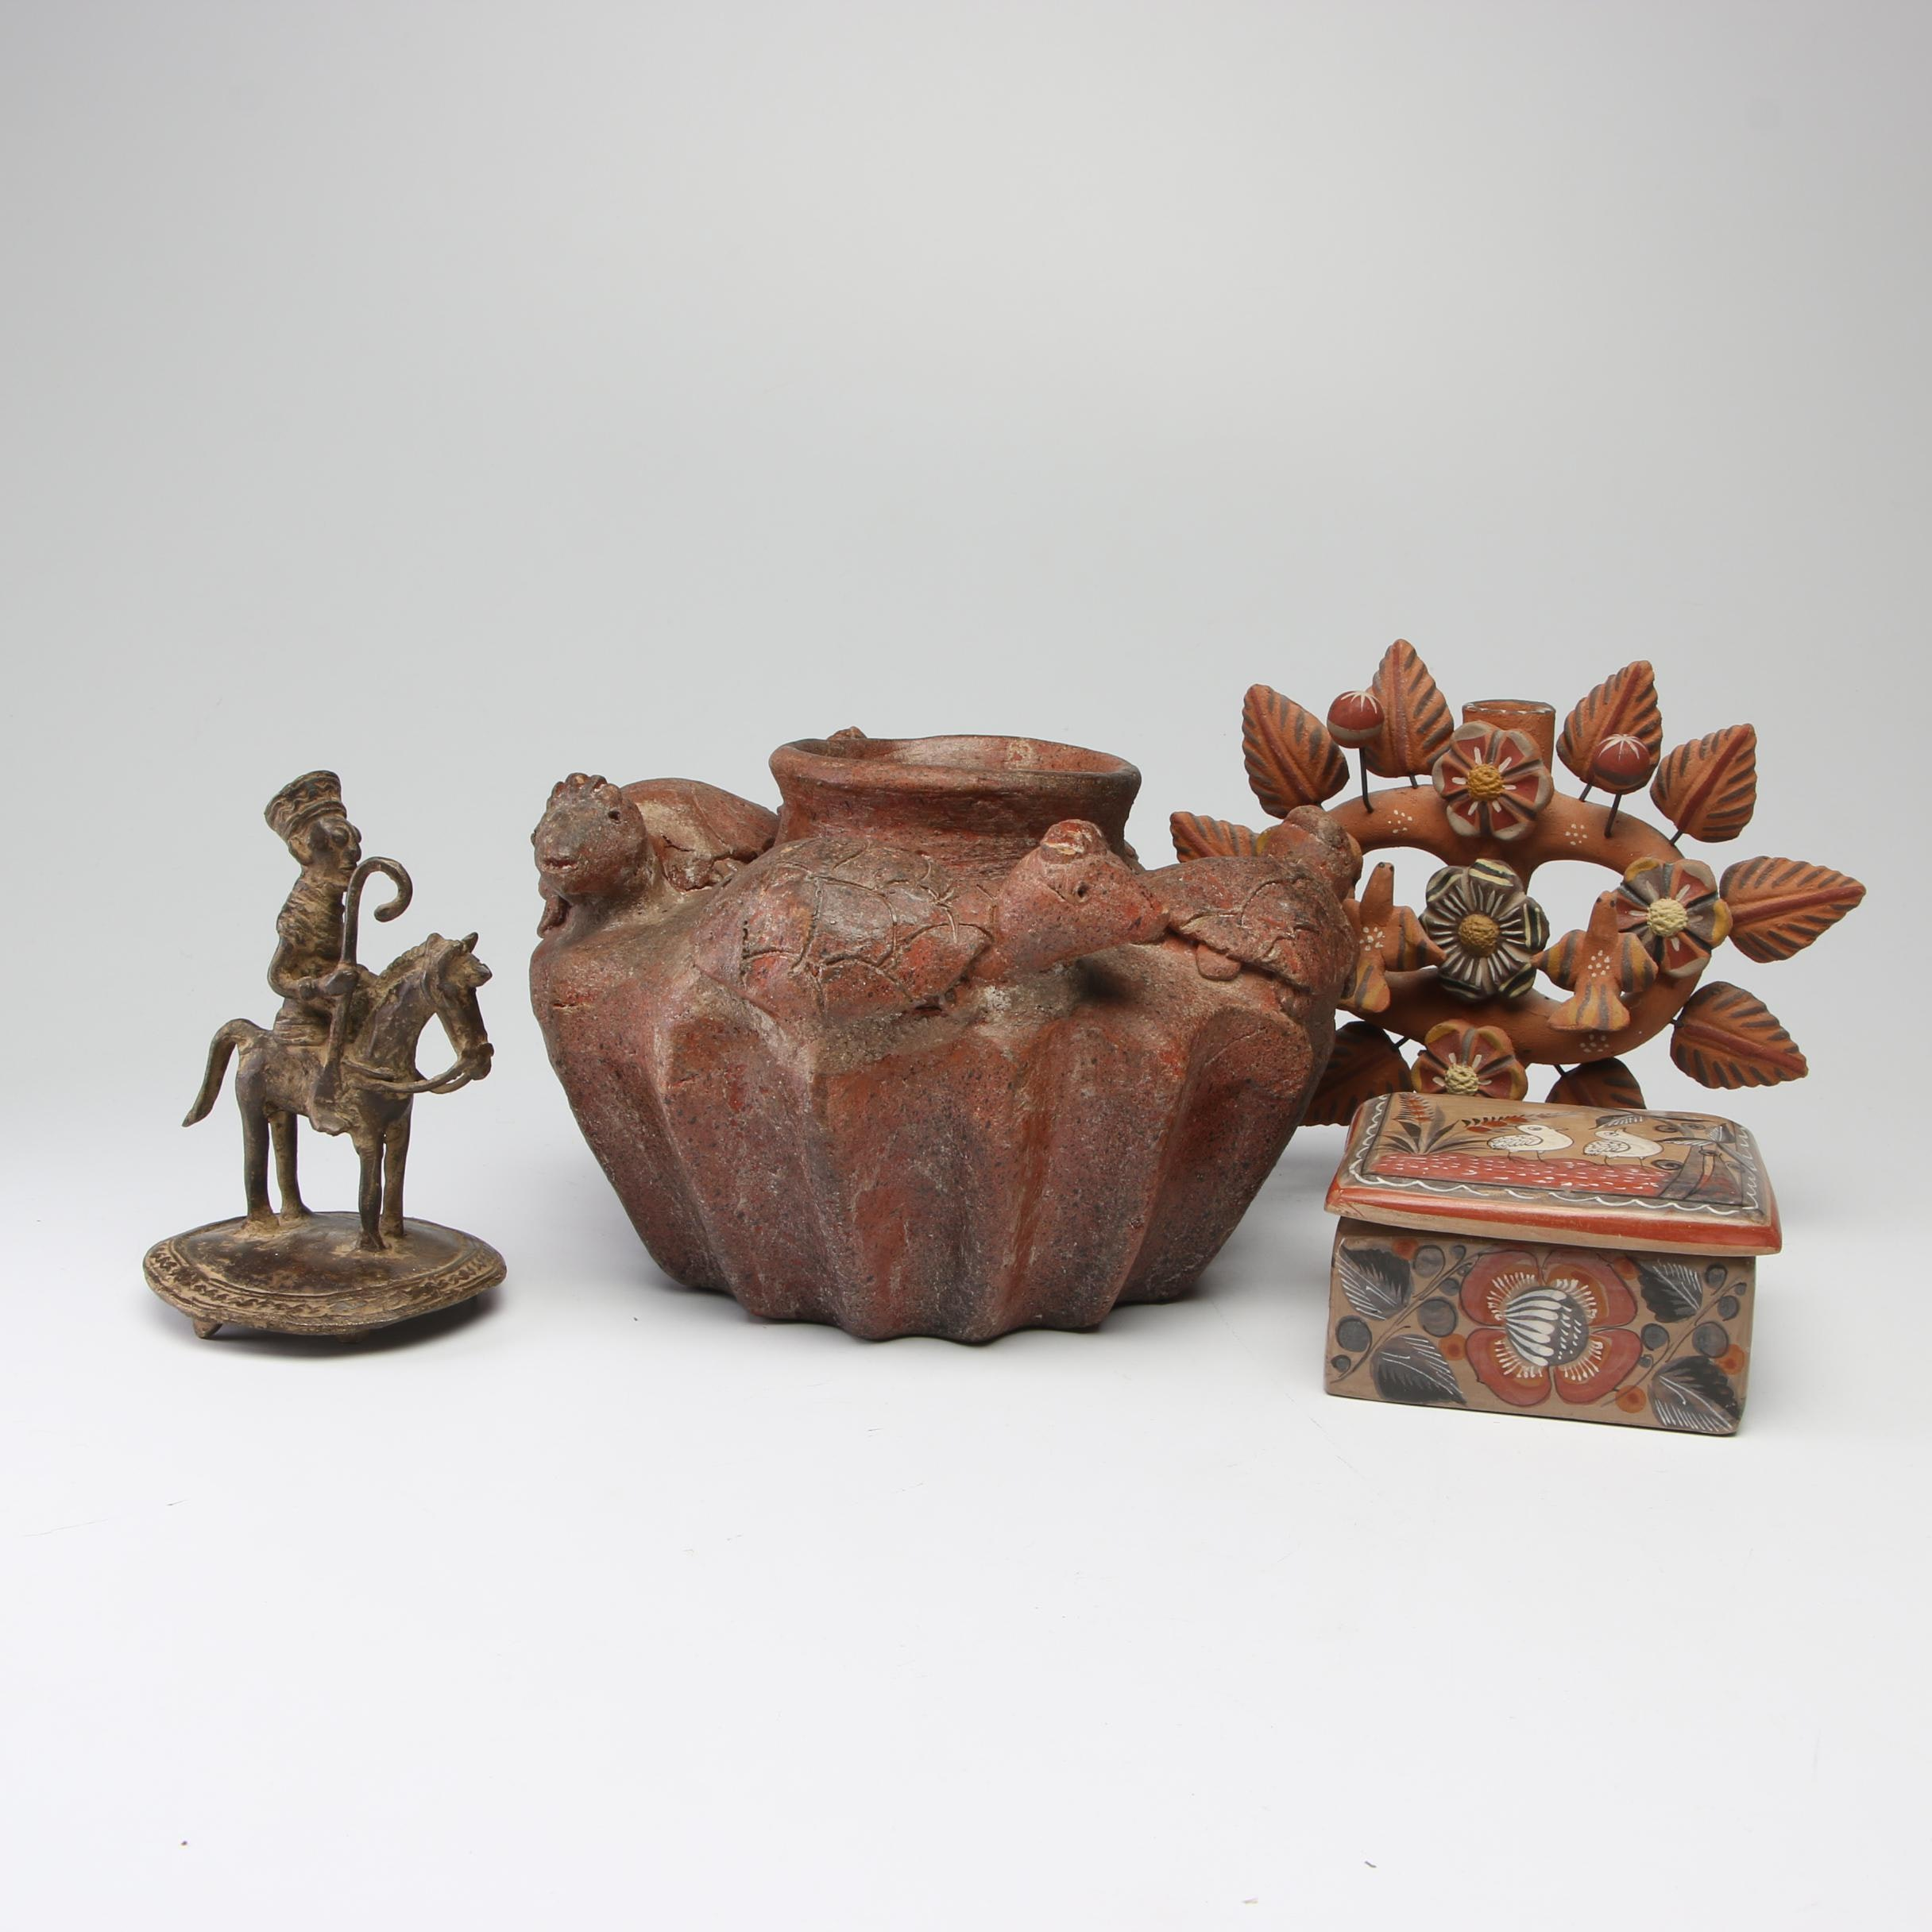 Akan Copper Alloy Equestrian Figure with Jalisco Box and Other Pottery